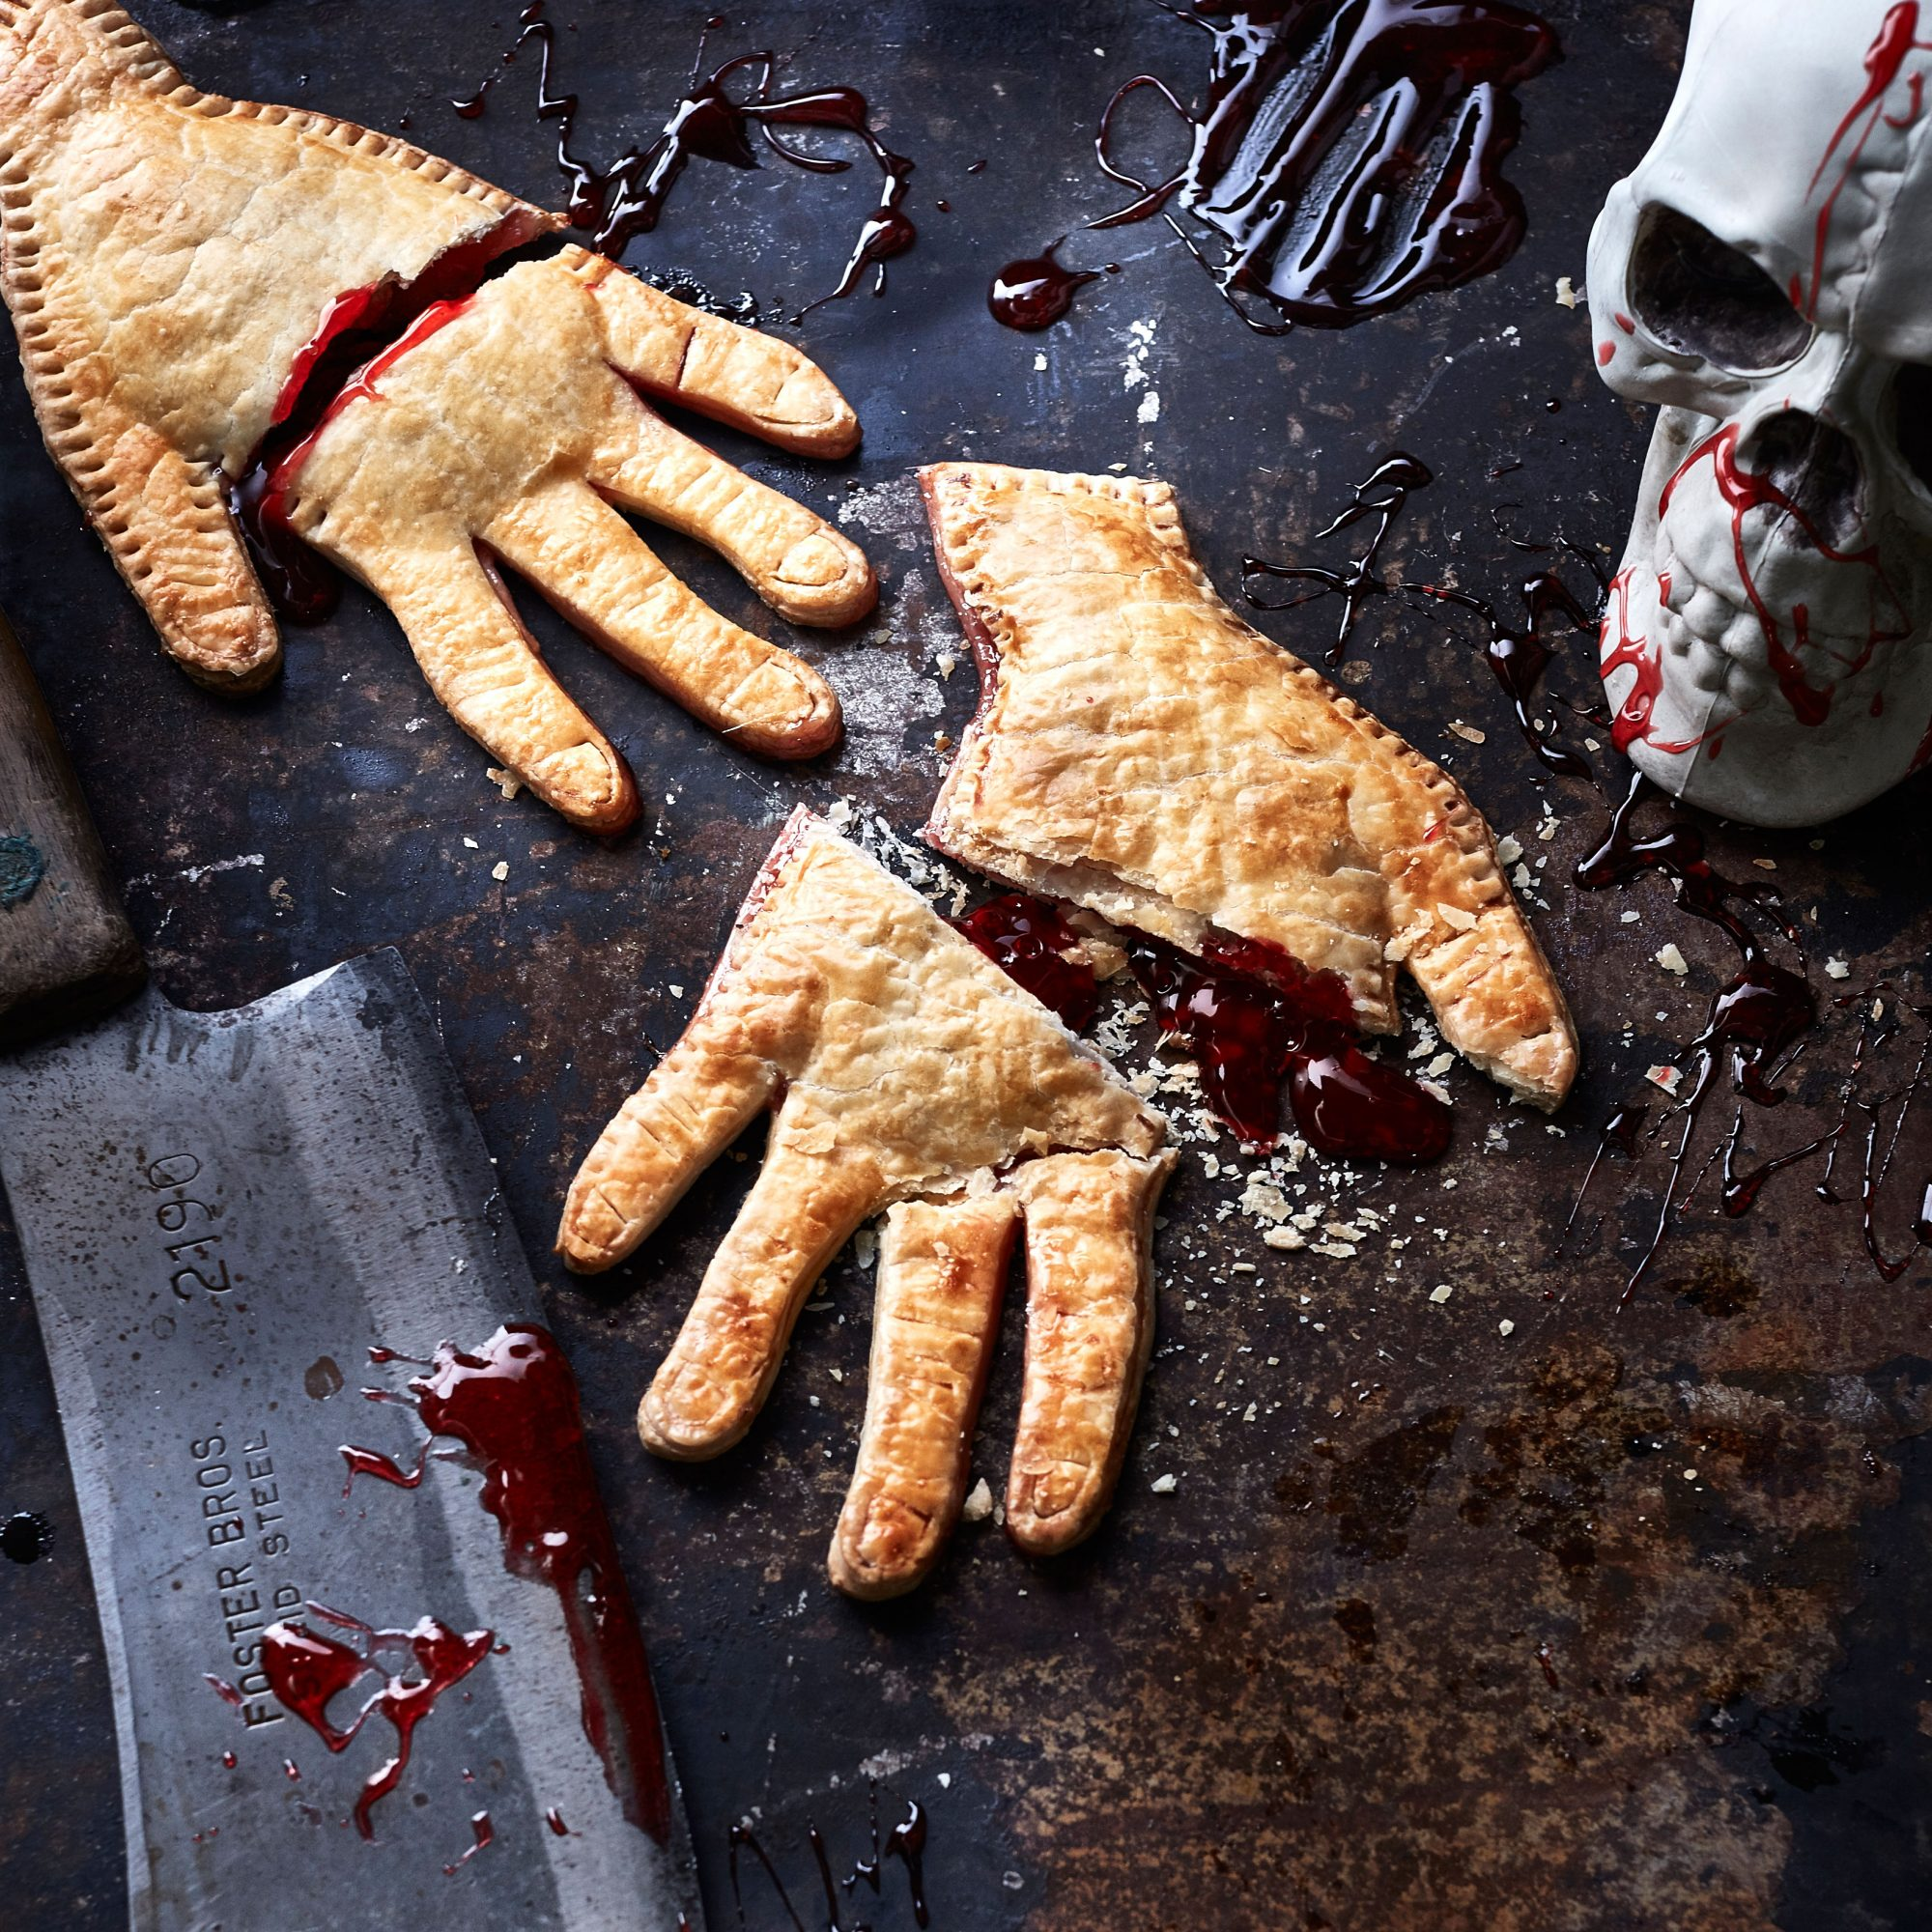 Recipes for an Adults-Only Halloween Party